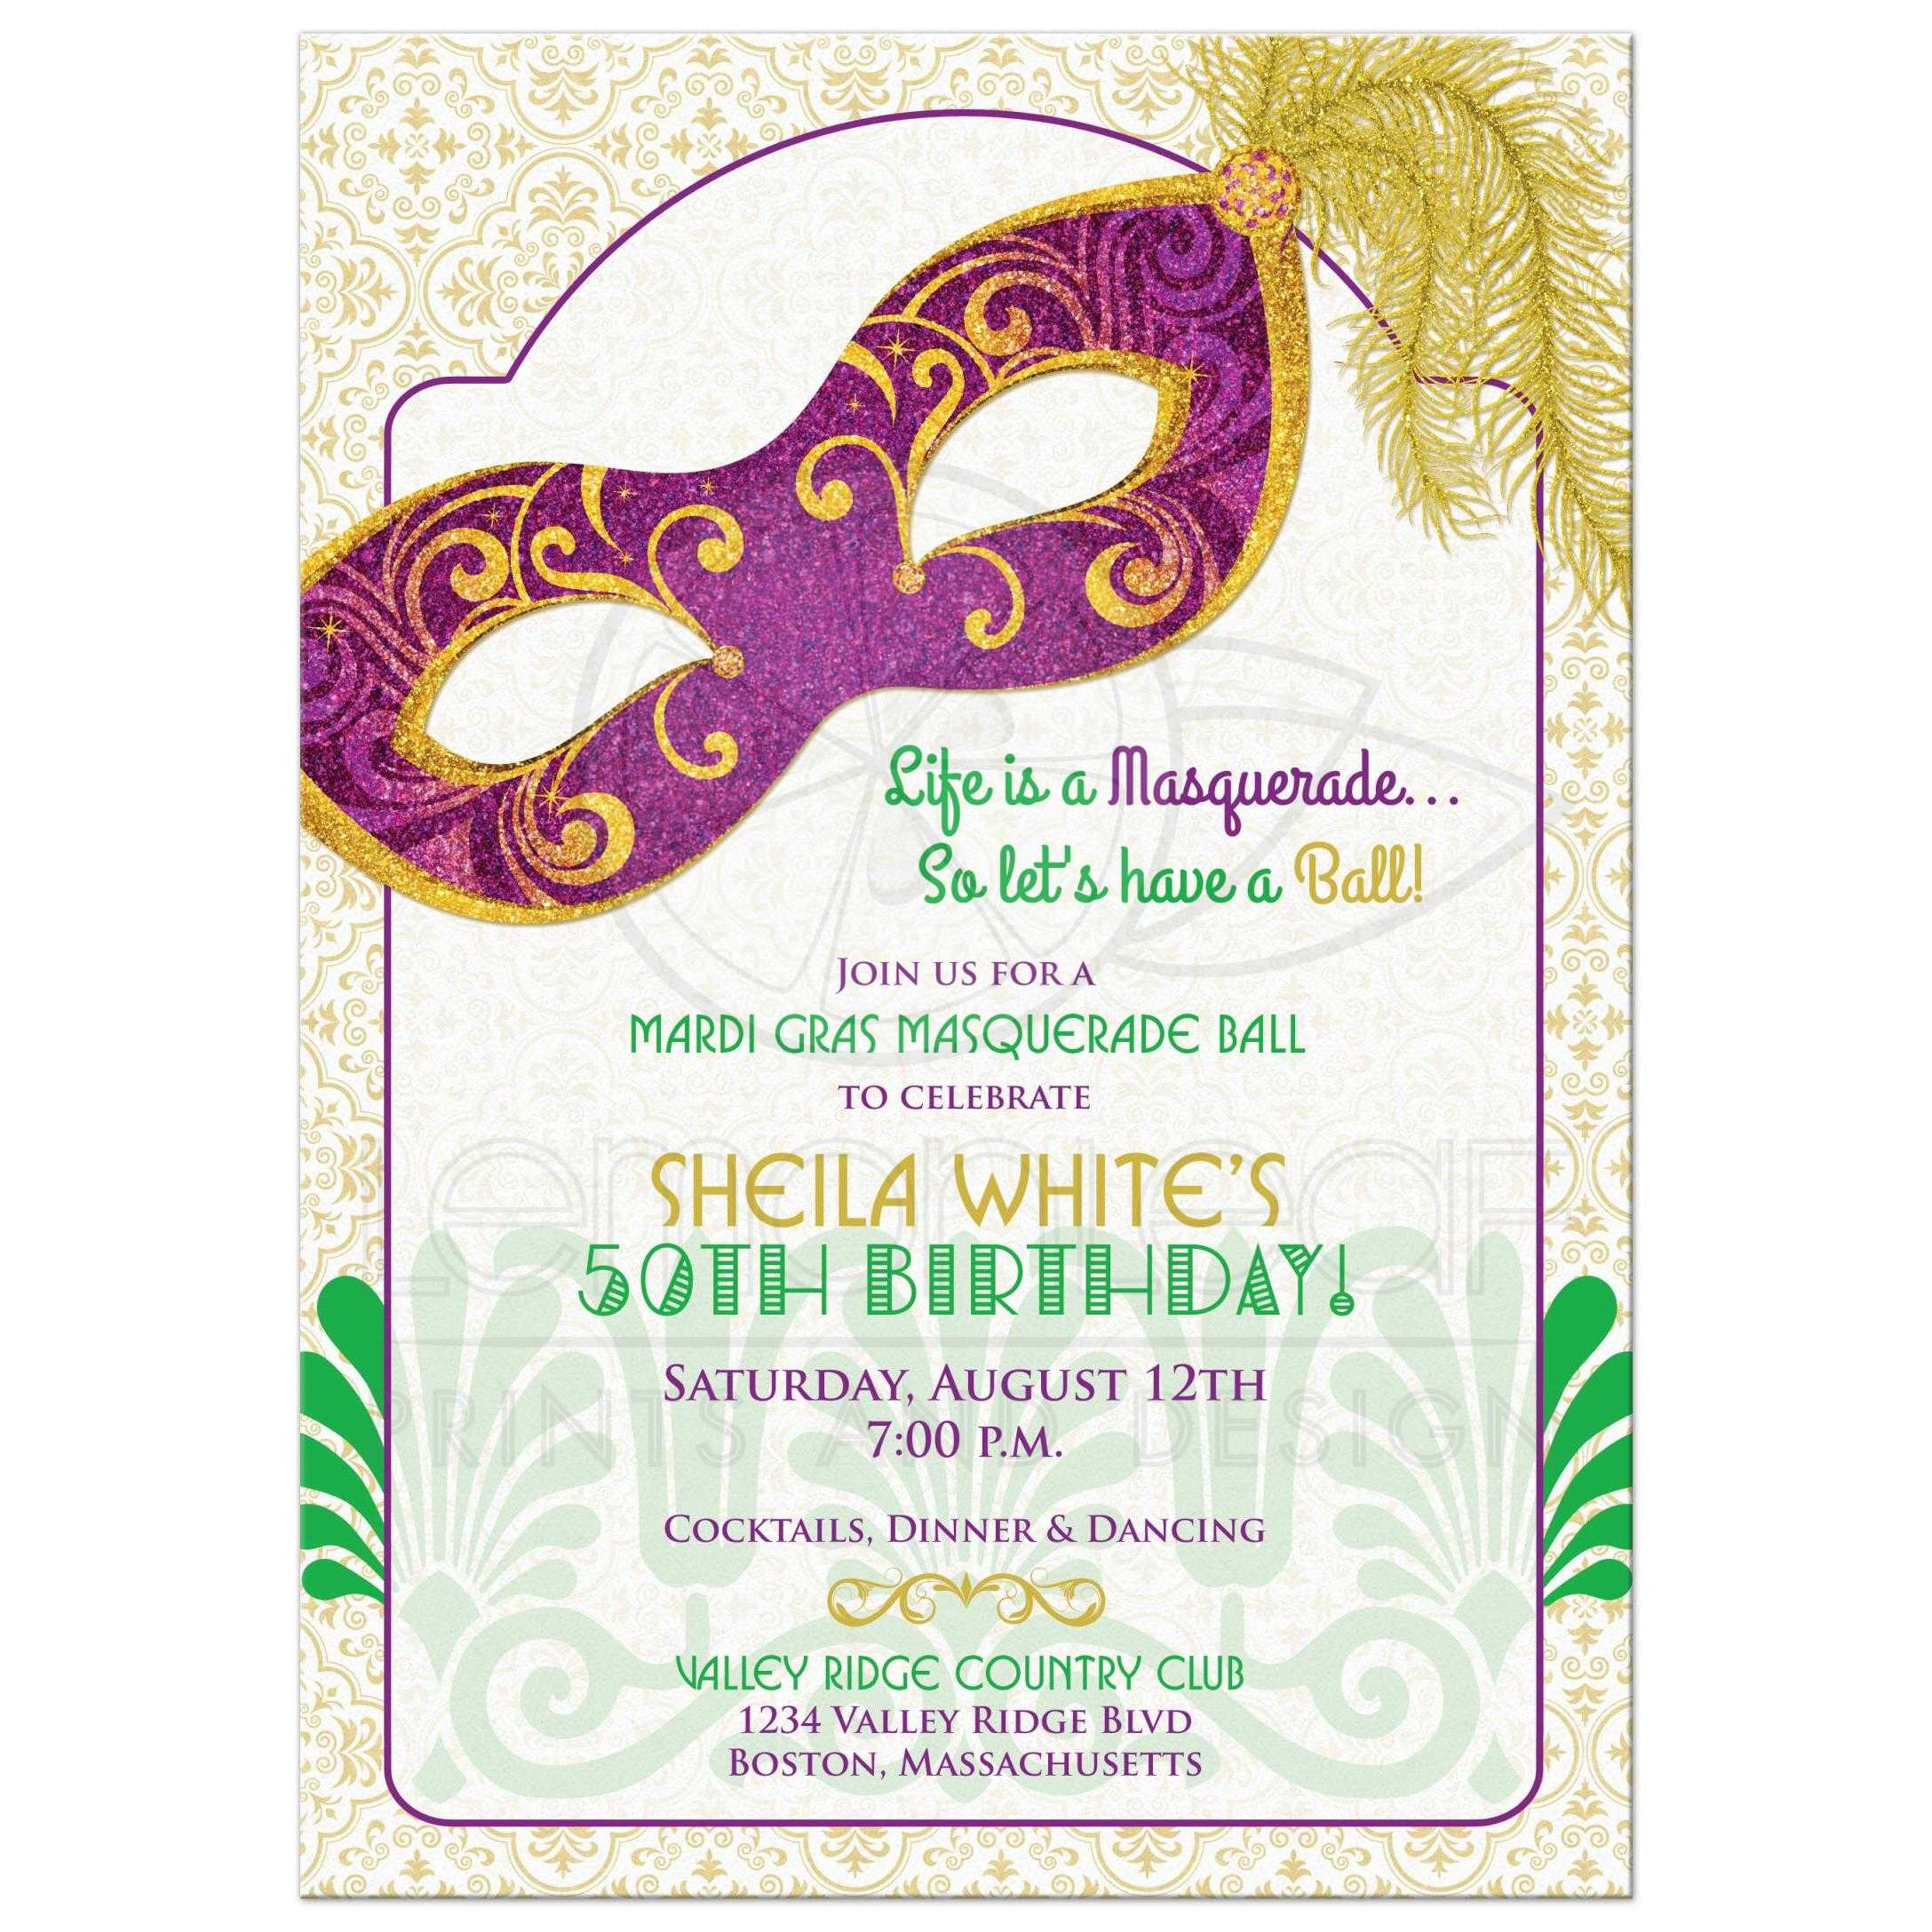 Carnival Party Invitation with great invitation template